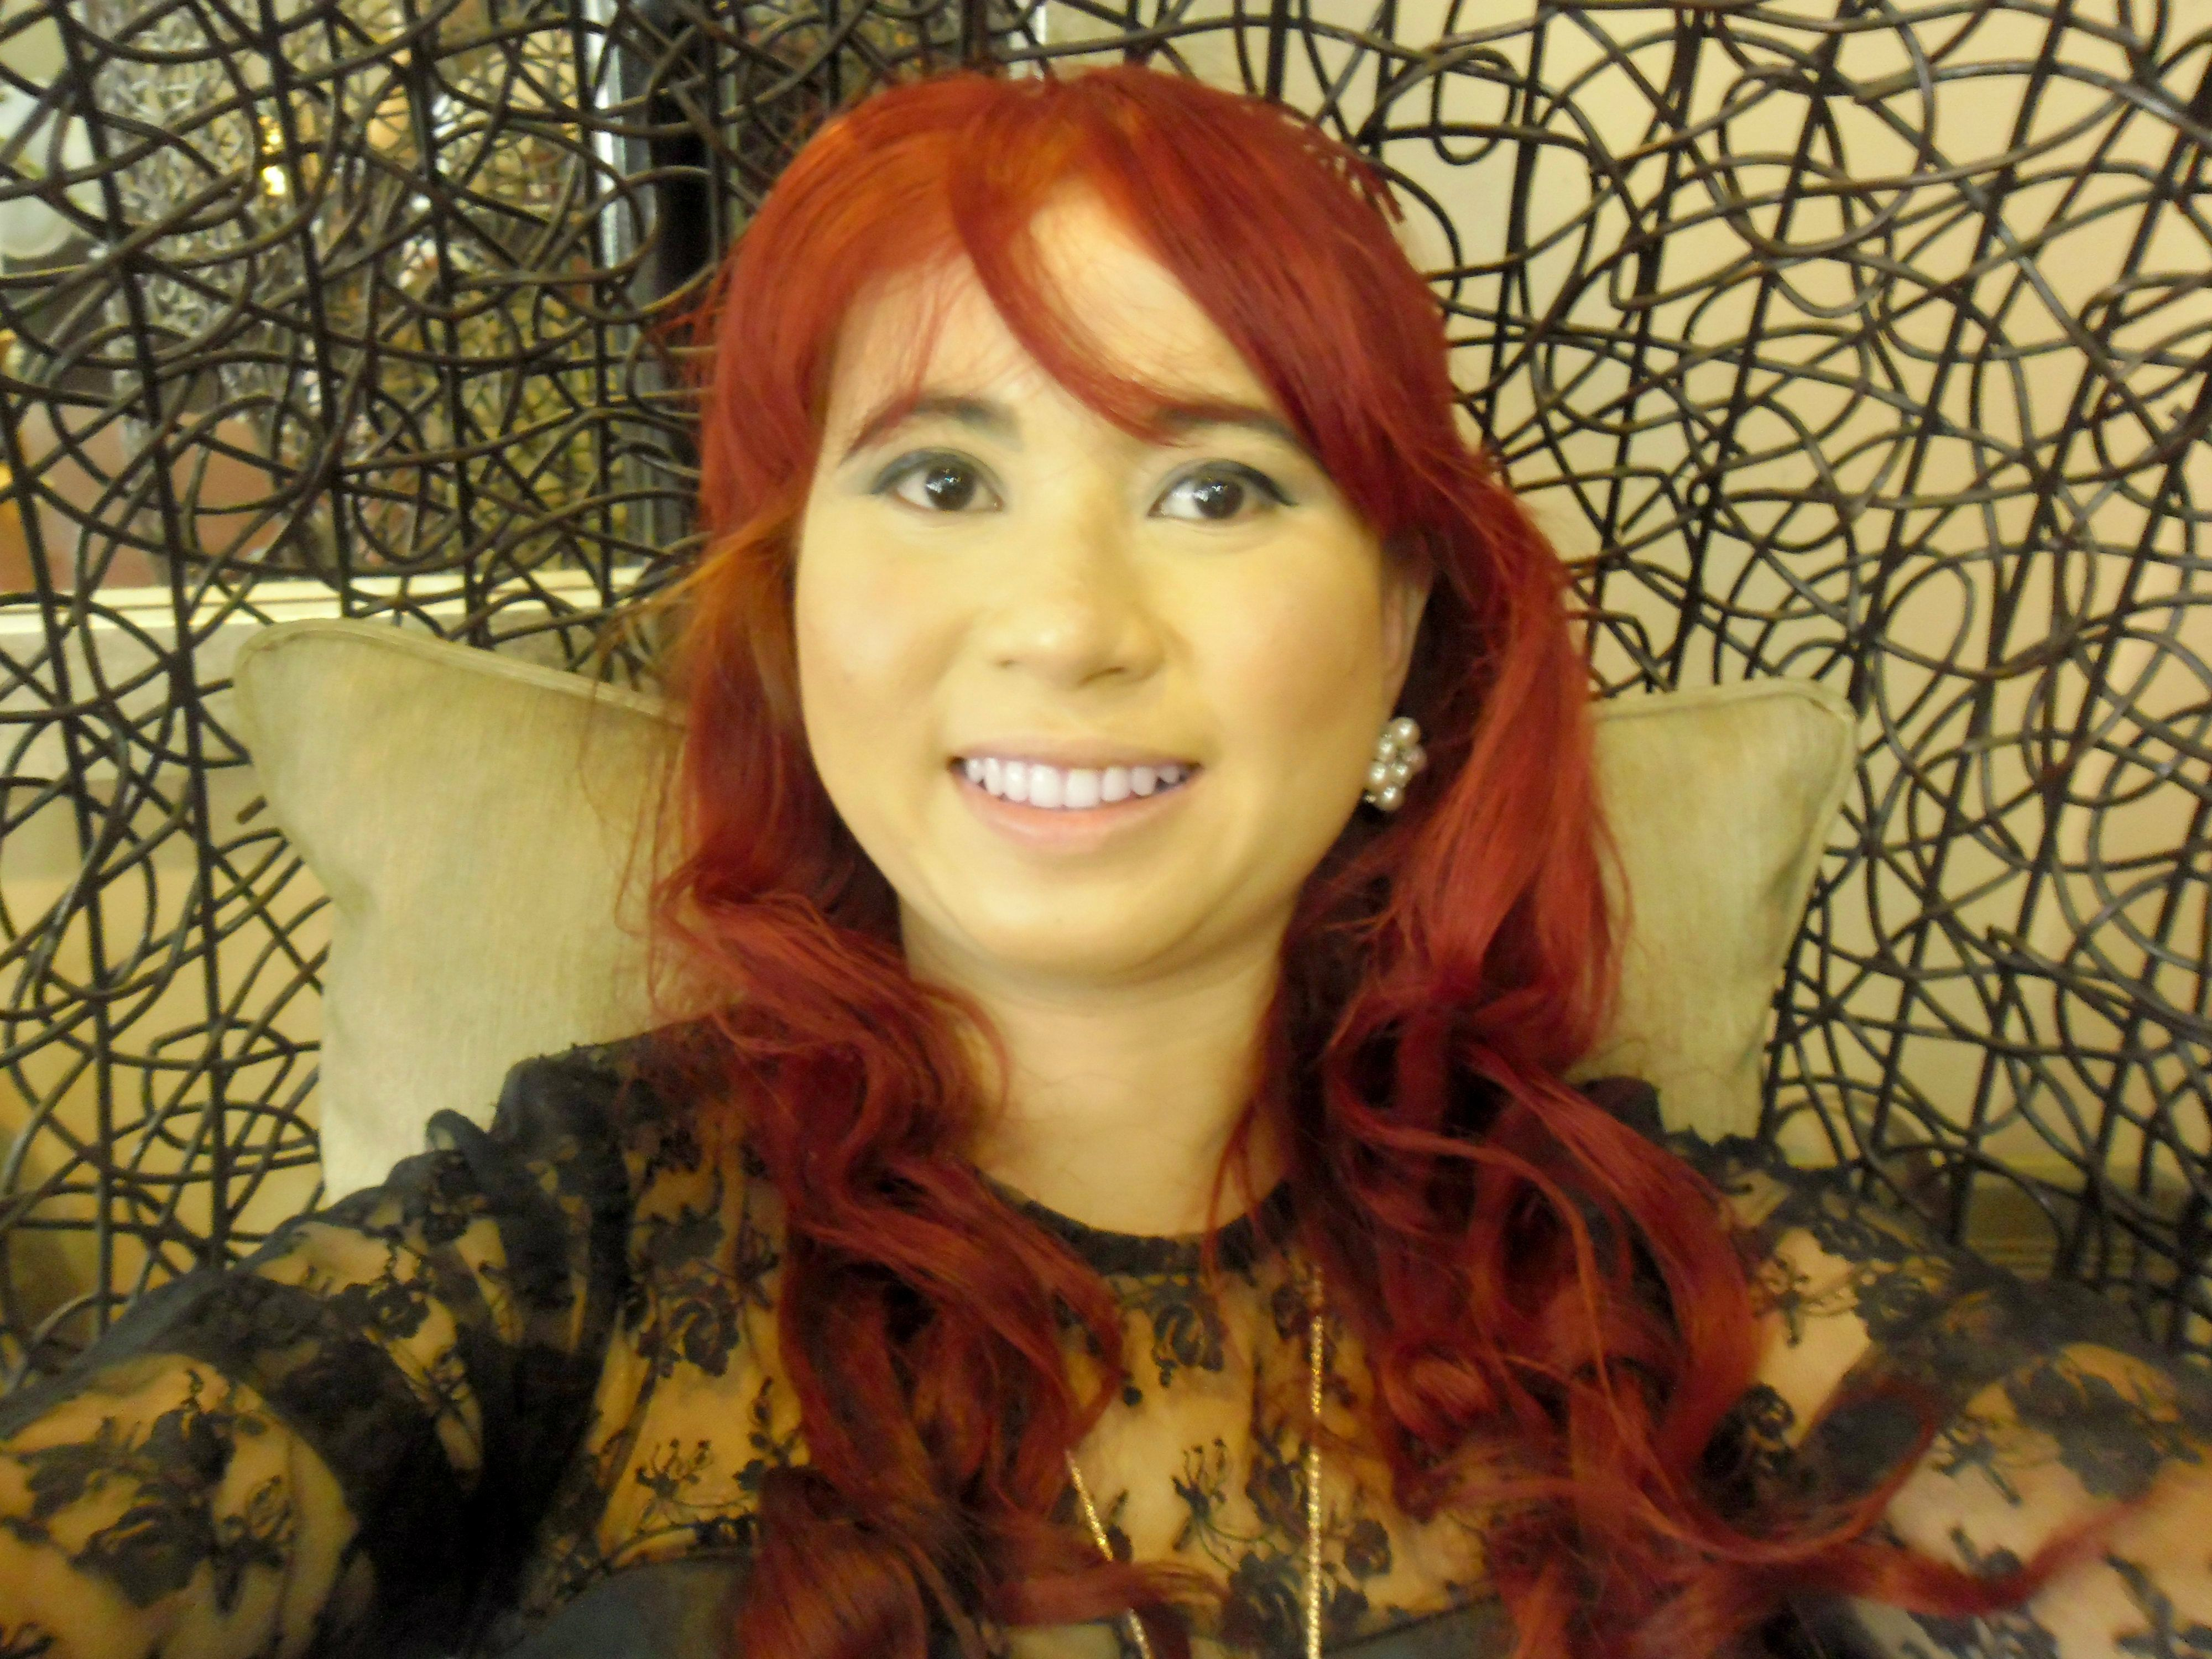 Crimson Obsession Splat Red Hair Dye By Joanna April Lumbad Red Hair Dyed Red Hair Dyed Hair